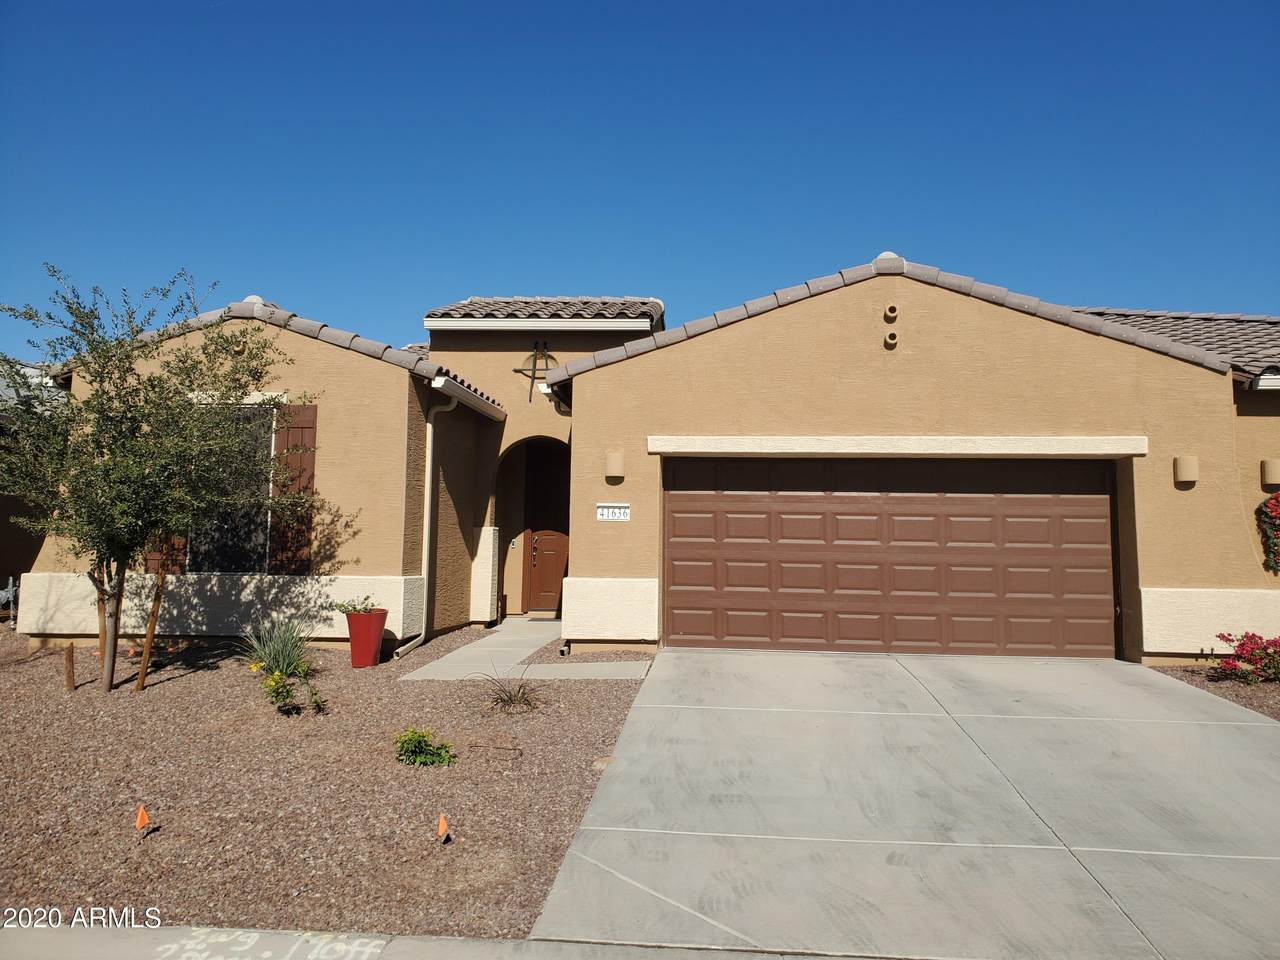 41636 Monsoon Lane - Photo 1